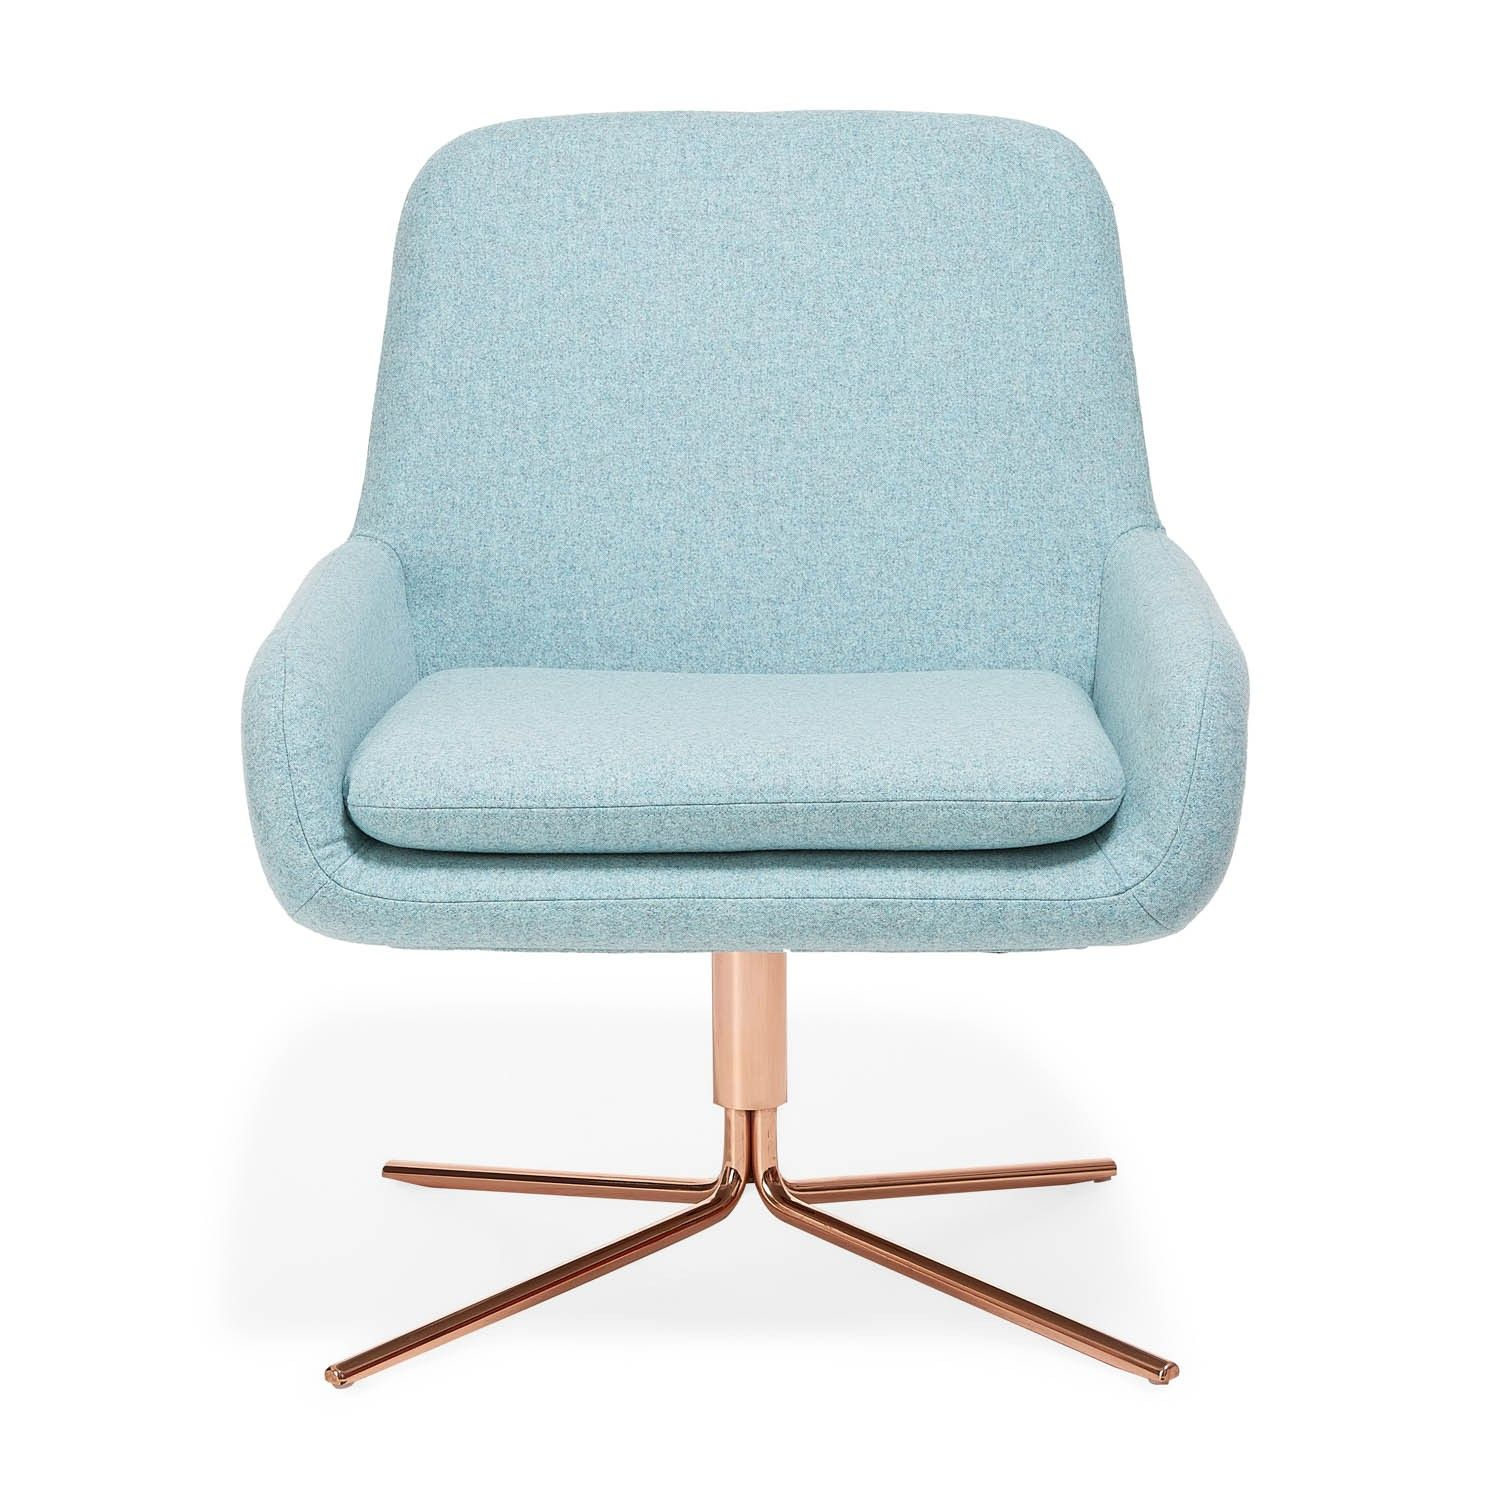 Softline pink swivel square chair drawing inspiration from mid century modern styles architects busk hertzog designed this organically shaped